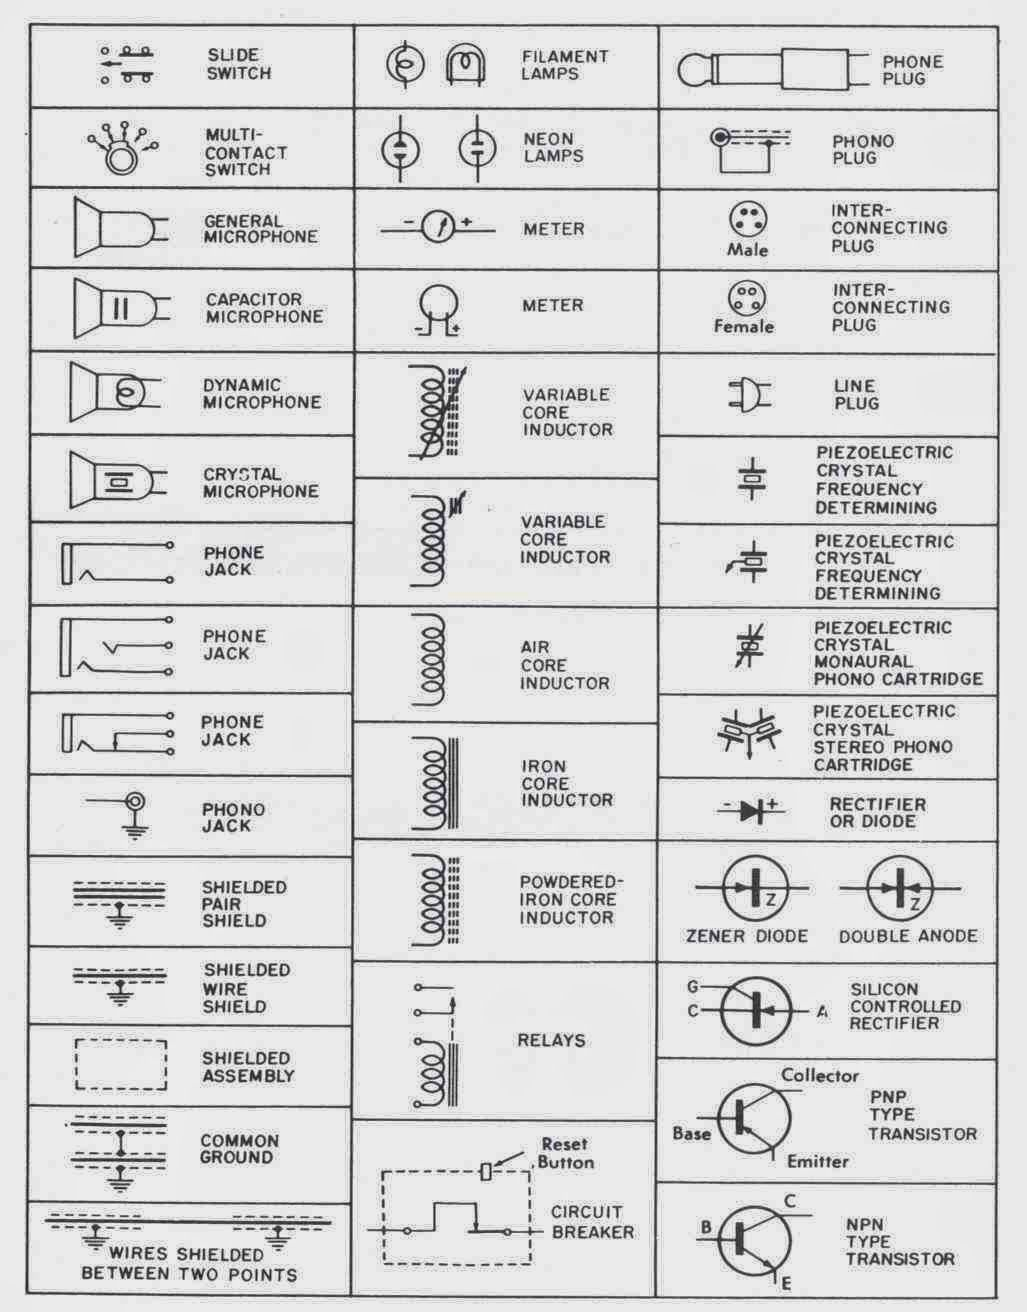 hv circuit breaker wiring diagram